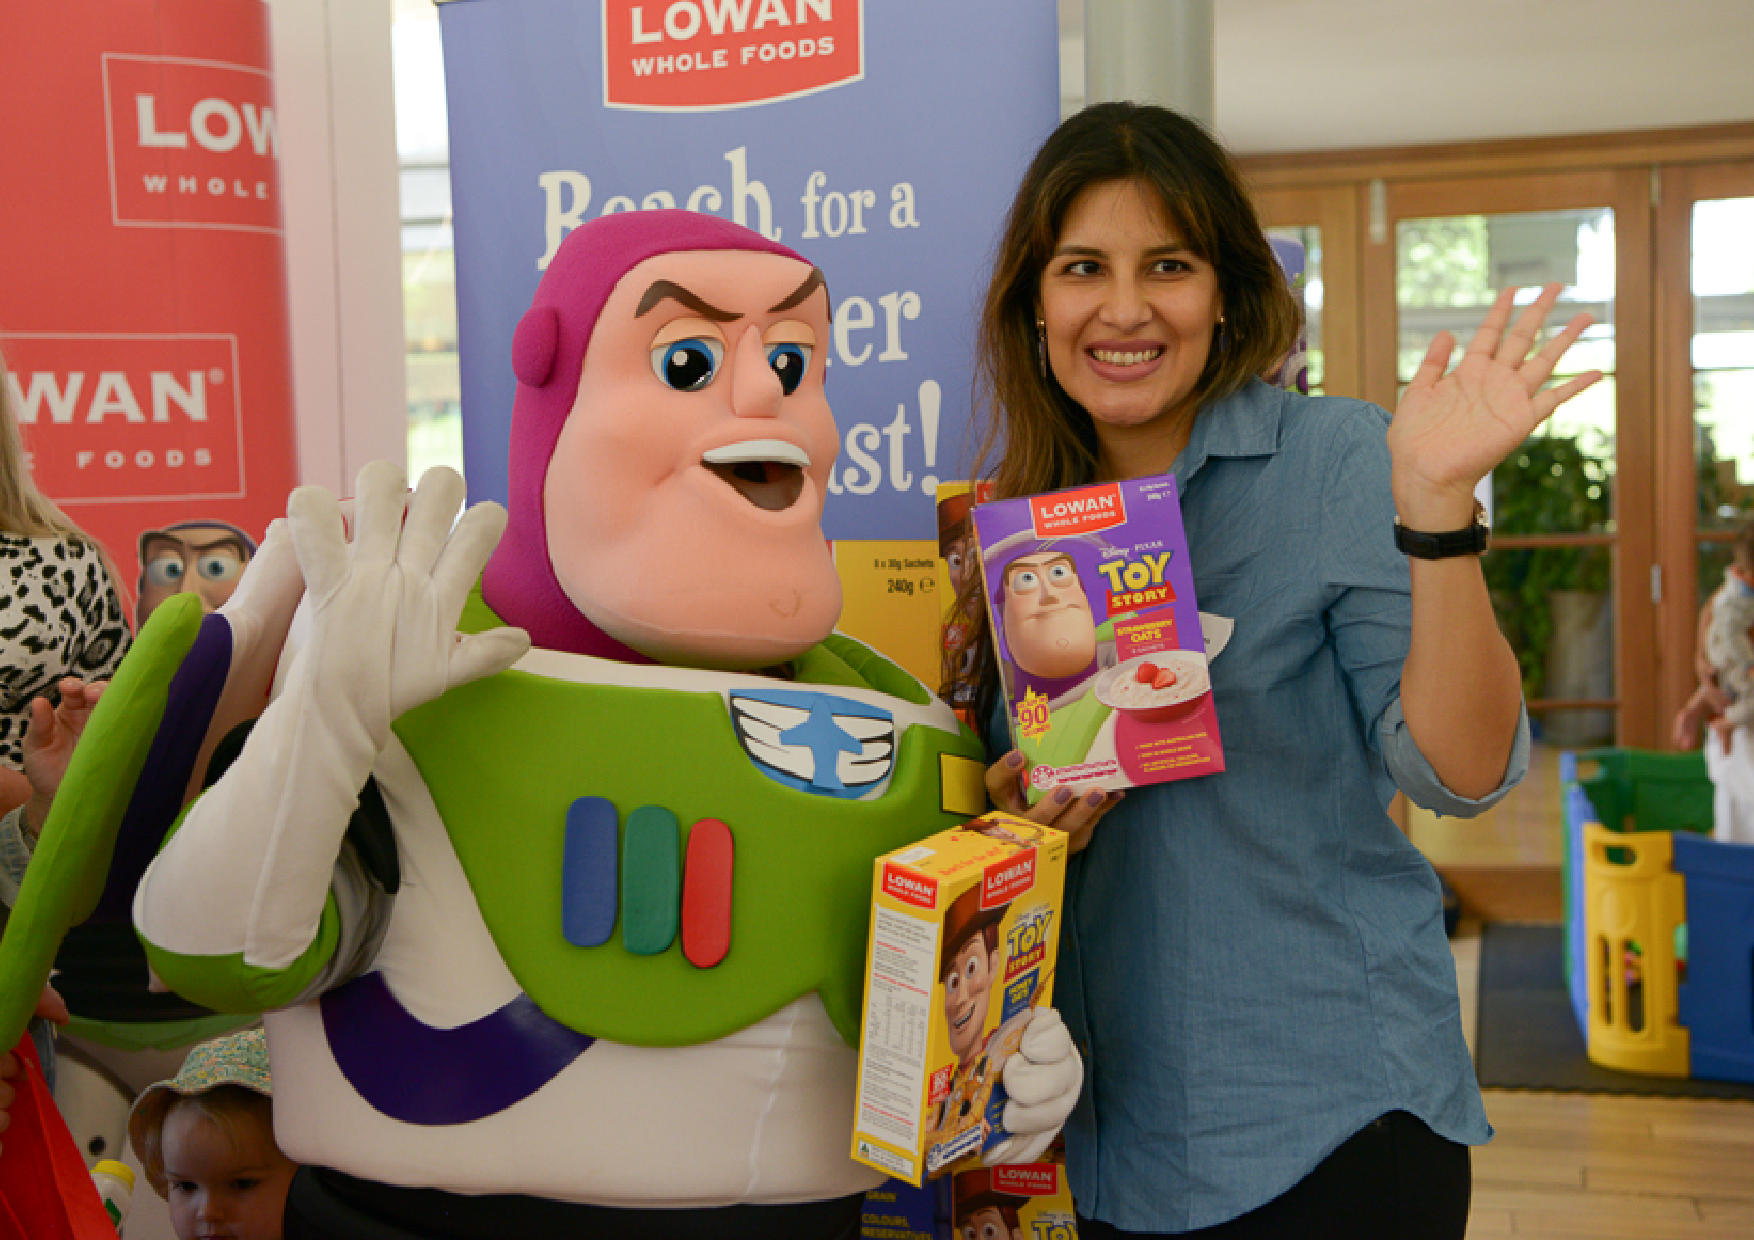 Influencer, Vanessa (Child Blogger) standing beside Buzz Lightyear showing Lowan's Whole Foods Toy Story range